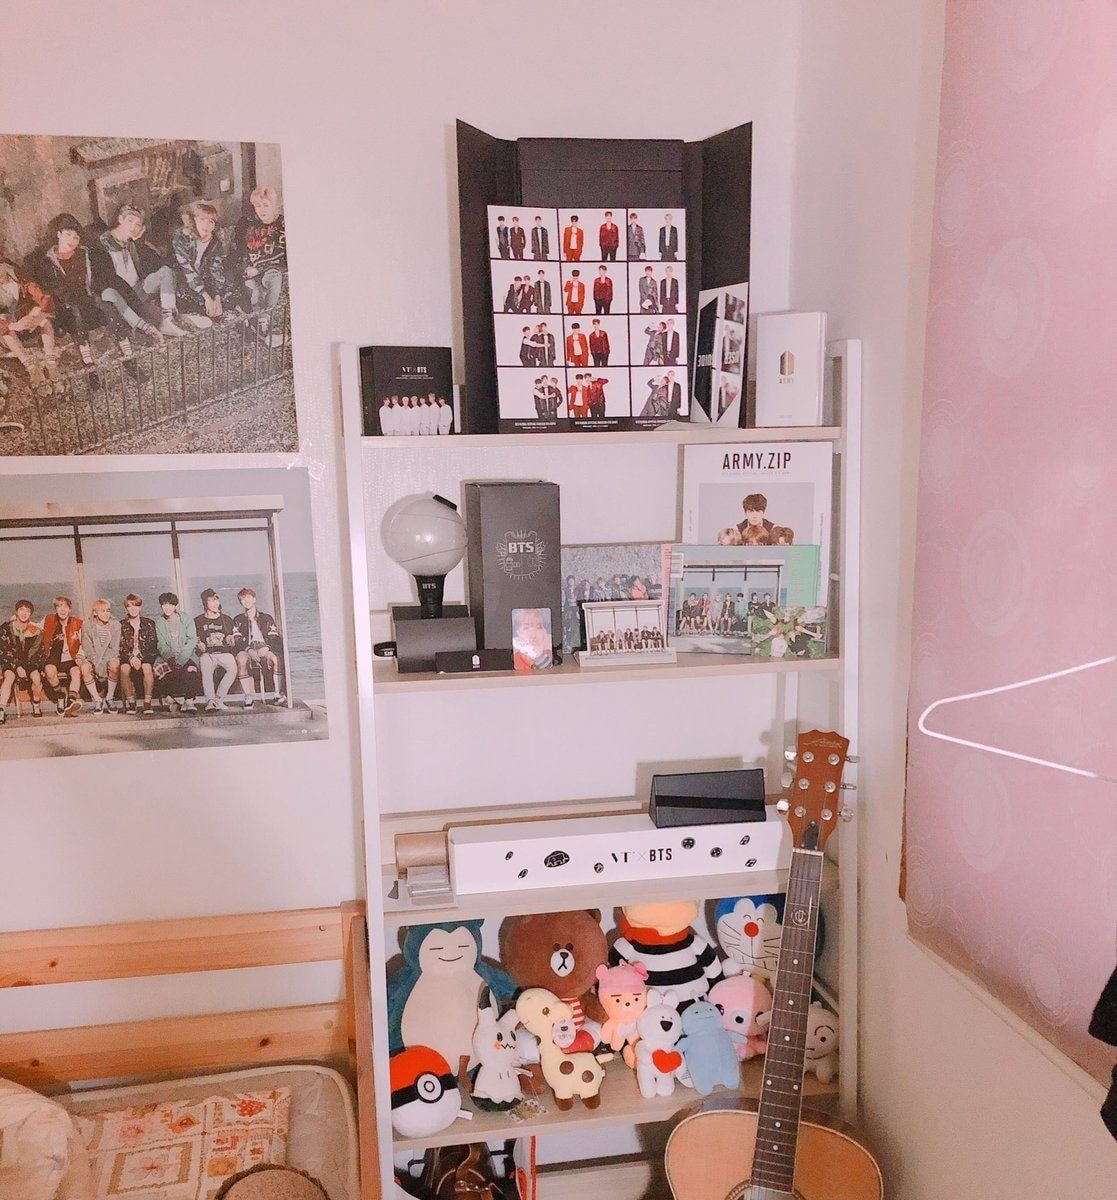 K-Pop Fans' Room Decorations & Ideas How To Customize Your ...